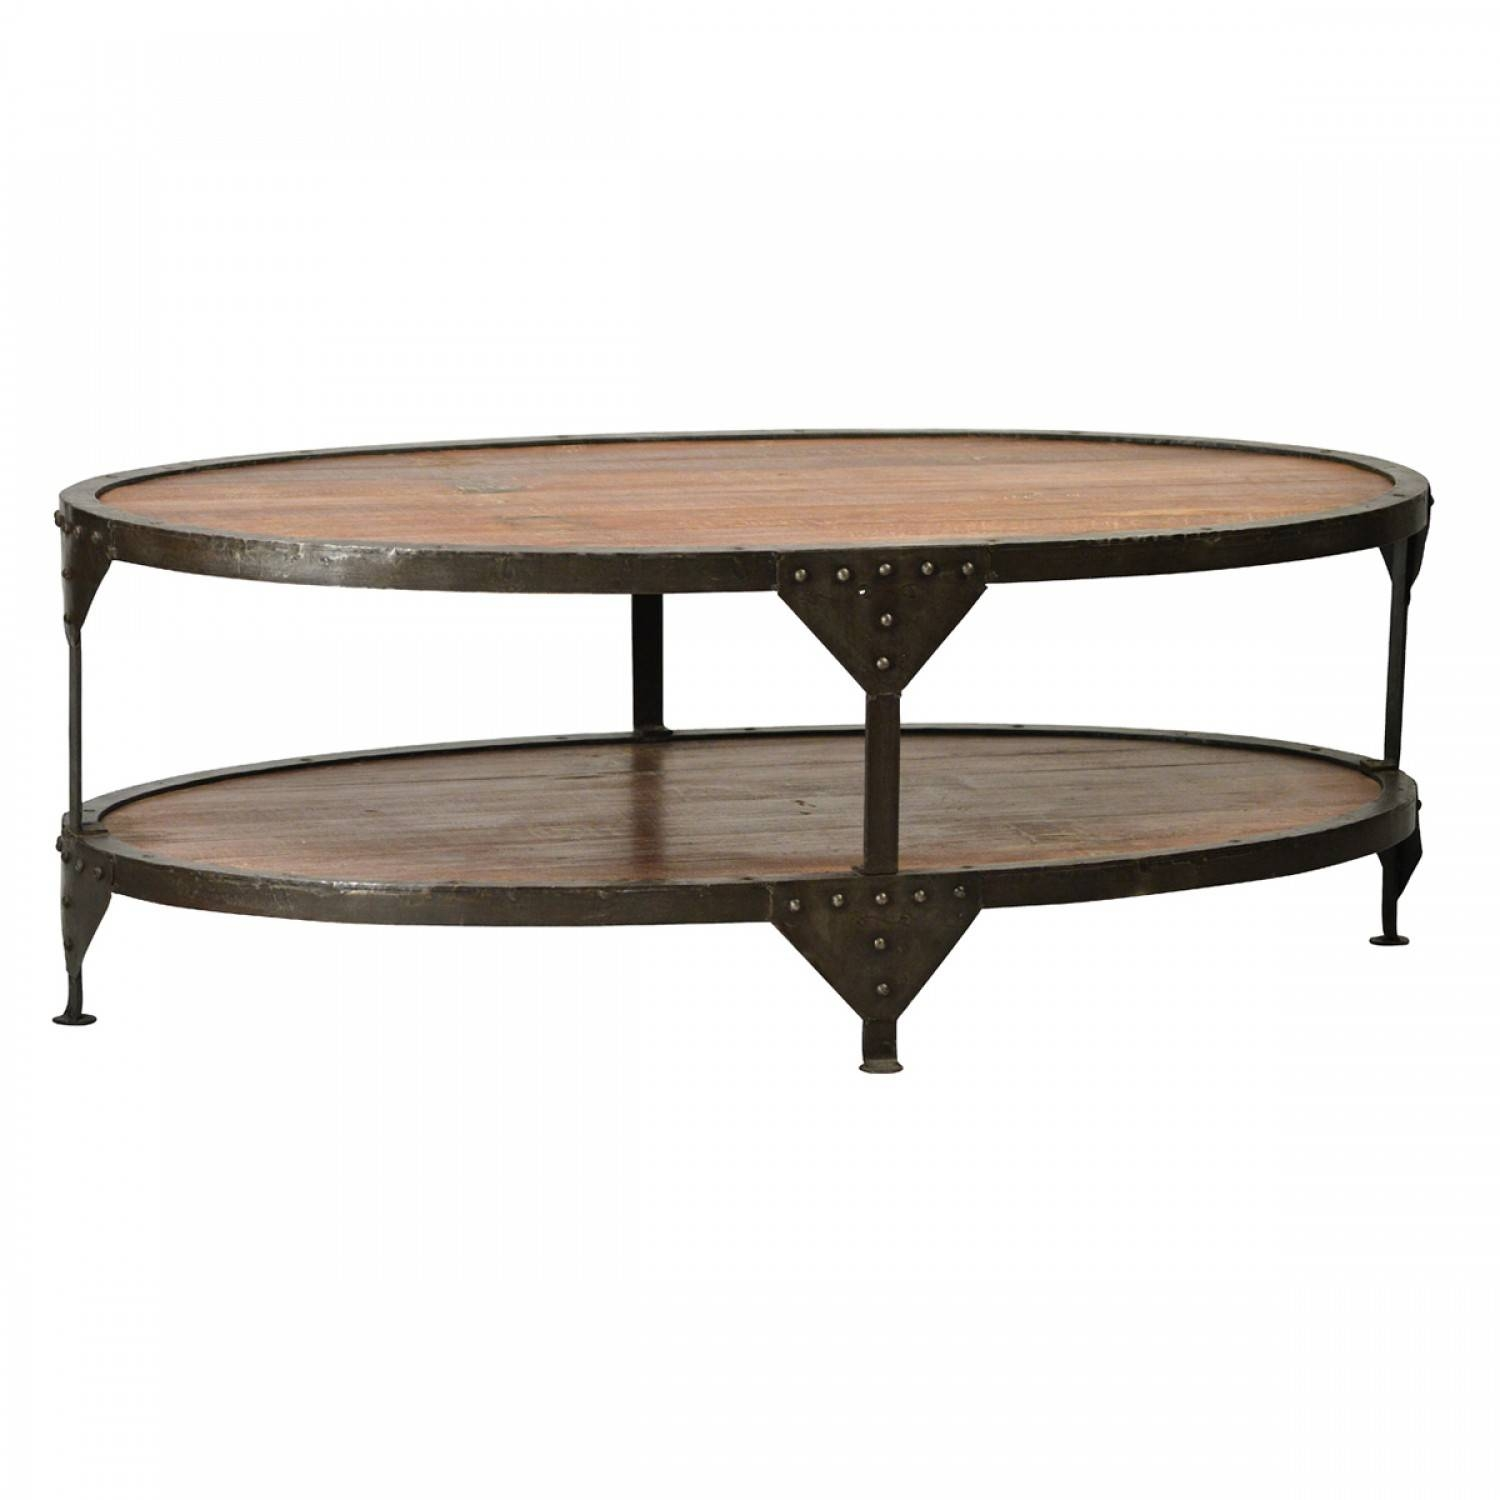 Furniture: Small Oval Coffee Table | Target Living Room Tables Pertaining To Oval Glass Coffee Tables (View 11 of 30)